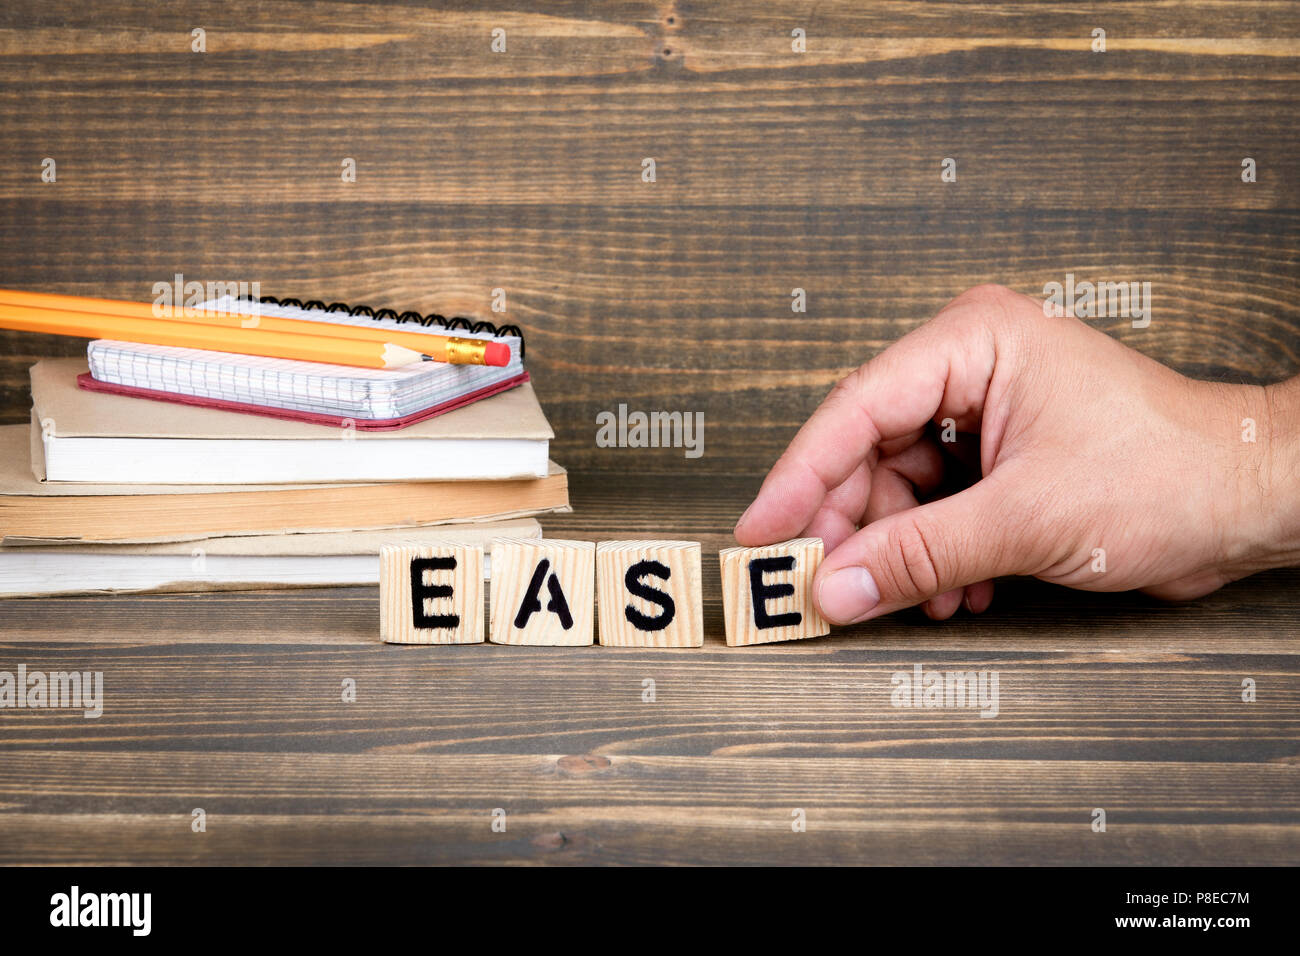 Ease. Wooden letters on the office desk - Stock Image